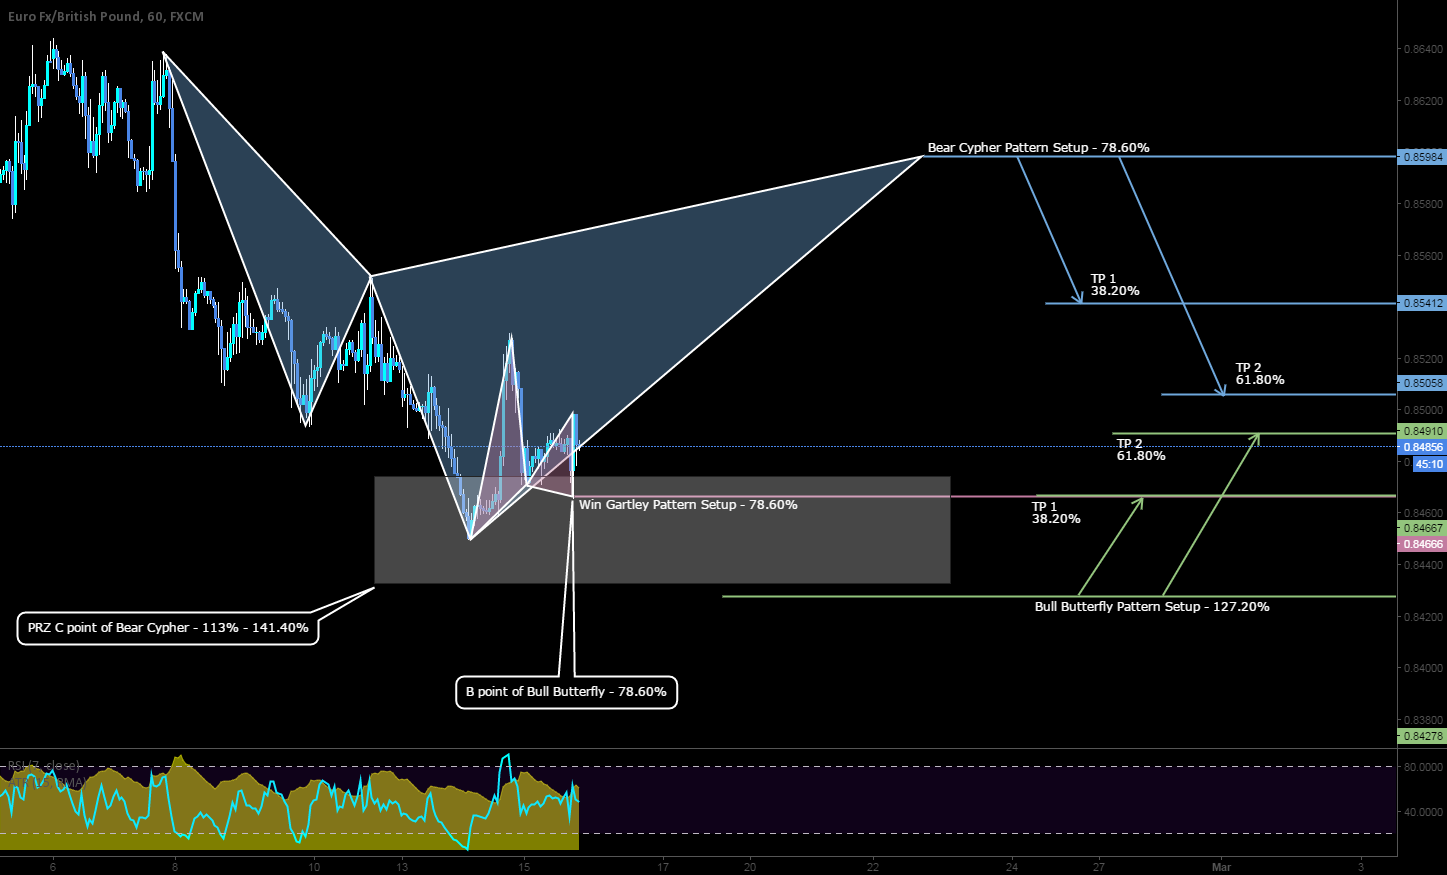 Bracketing the EURGBP with 2 advance patterns